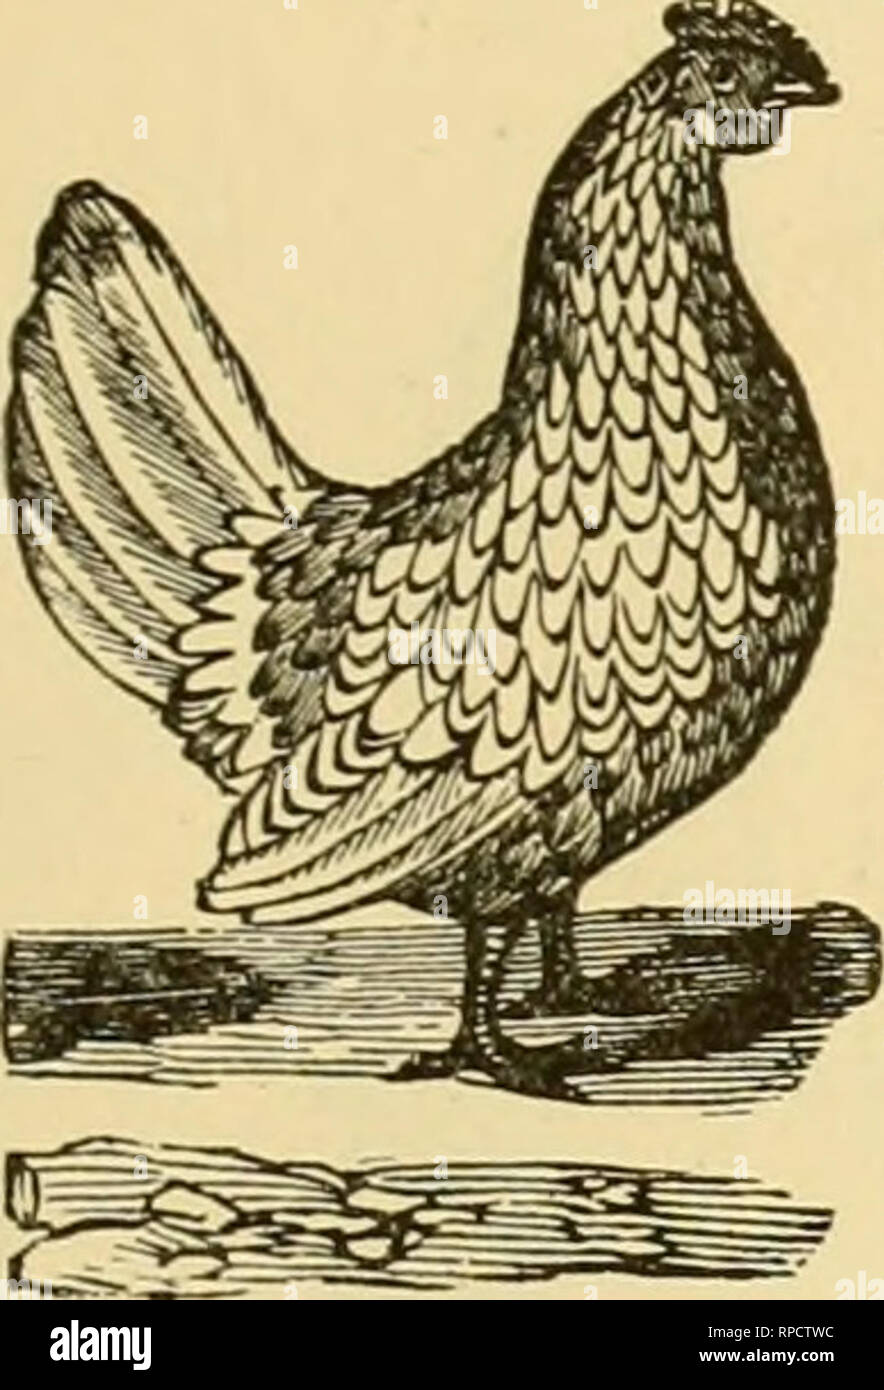 . The American farmer's pictorial cyclopedia of live stock ... Livestock; Veterinary medicine. UAMF: fowls. AM) OTlllCli RAKE ISKEEUS. !l4i VII. Other Bantams. The principal varieties Ijred are the BUick, the Cochin, the Feather- legged, the Nankin, the Pekin, tlie Wiiite, the Seabright and the Japan- ese. The two latter will he suiEcient for notice here as being the two most distinct and elegant of all the varieties. VHI. The Seabright Bantam. These are of two varieties, tlie Golden-penciled, and the Silver-penciled, identical, except in the color of their plumage. A peculiarity of these is,  - Stock Image